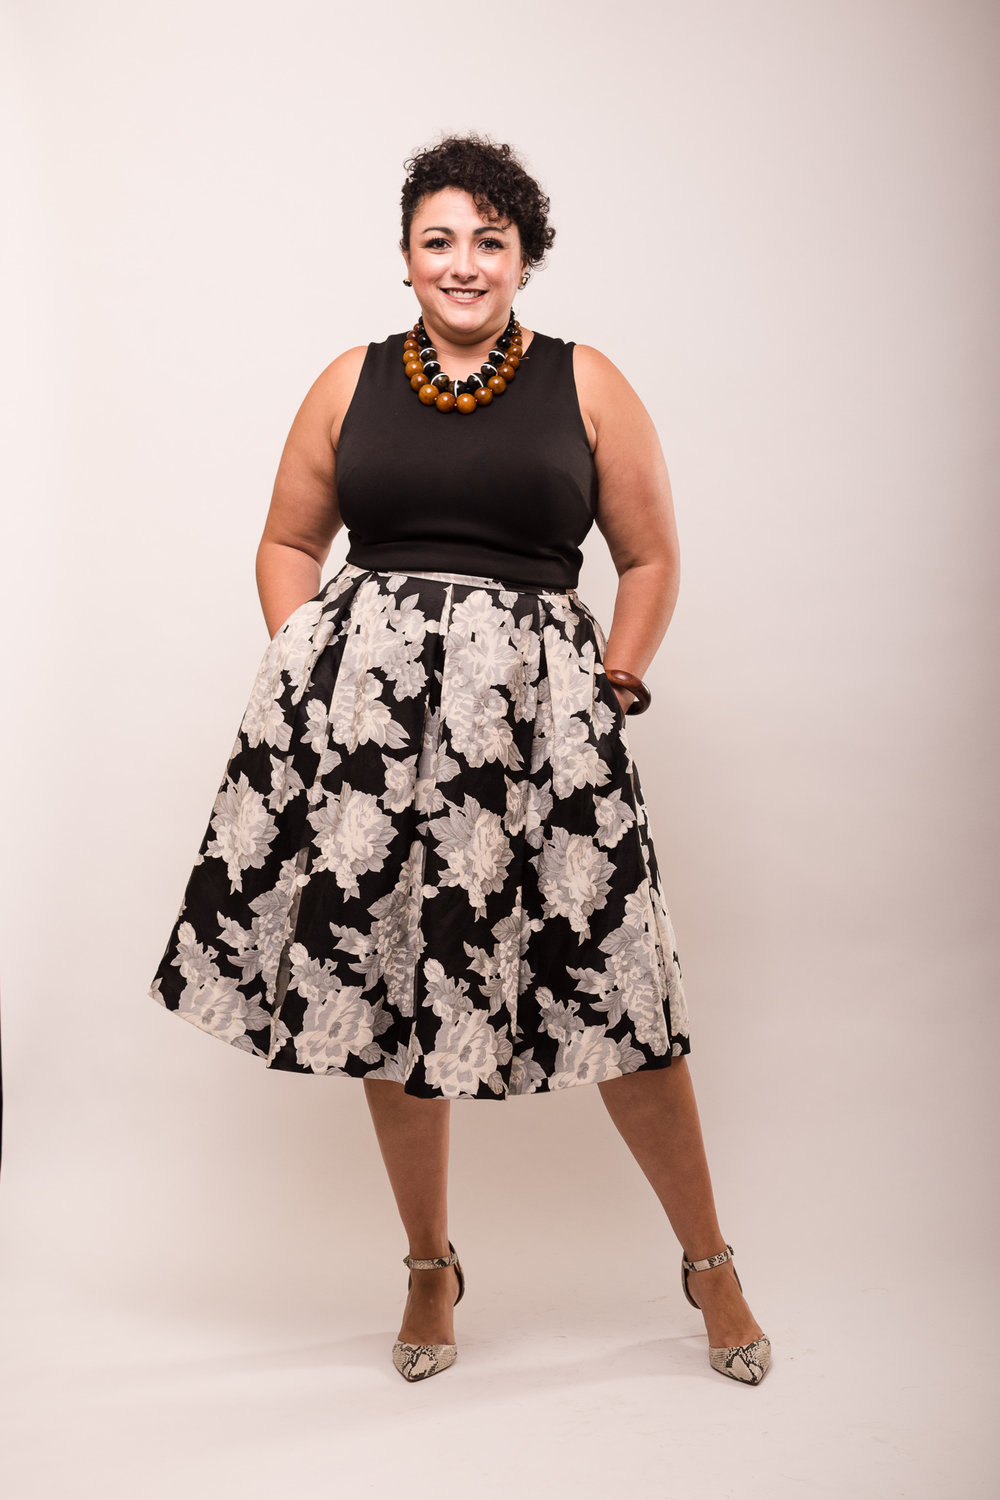 Gina is styled by Raquel Greer Gordian for a dressy casual occasion in Austin, Texas.